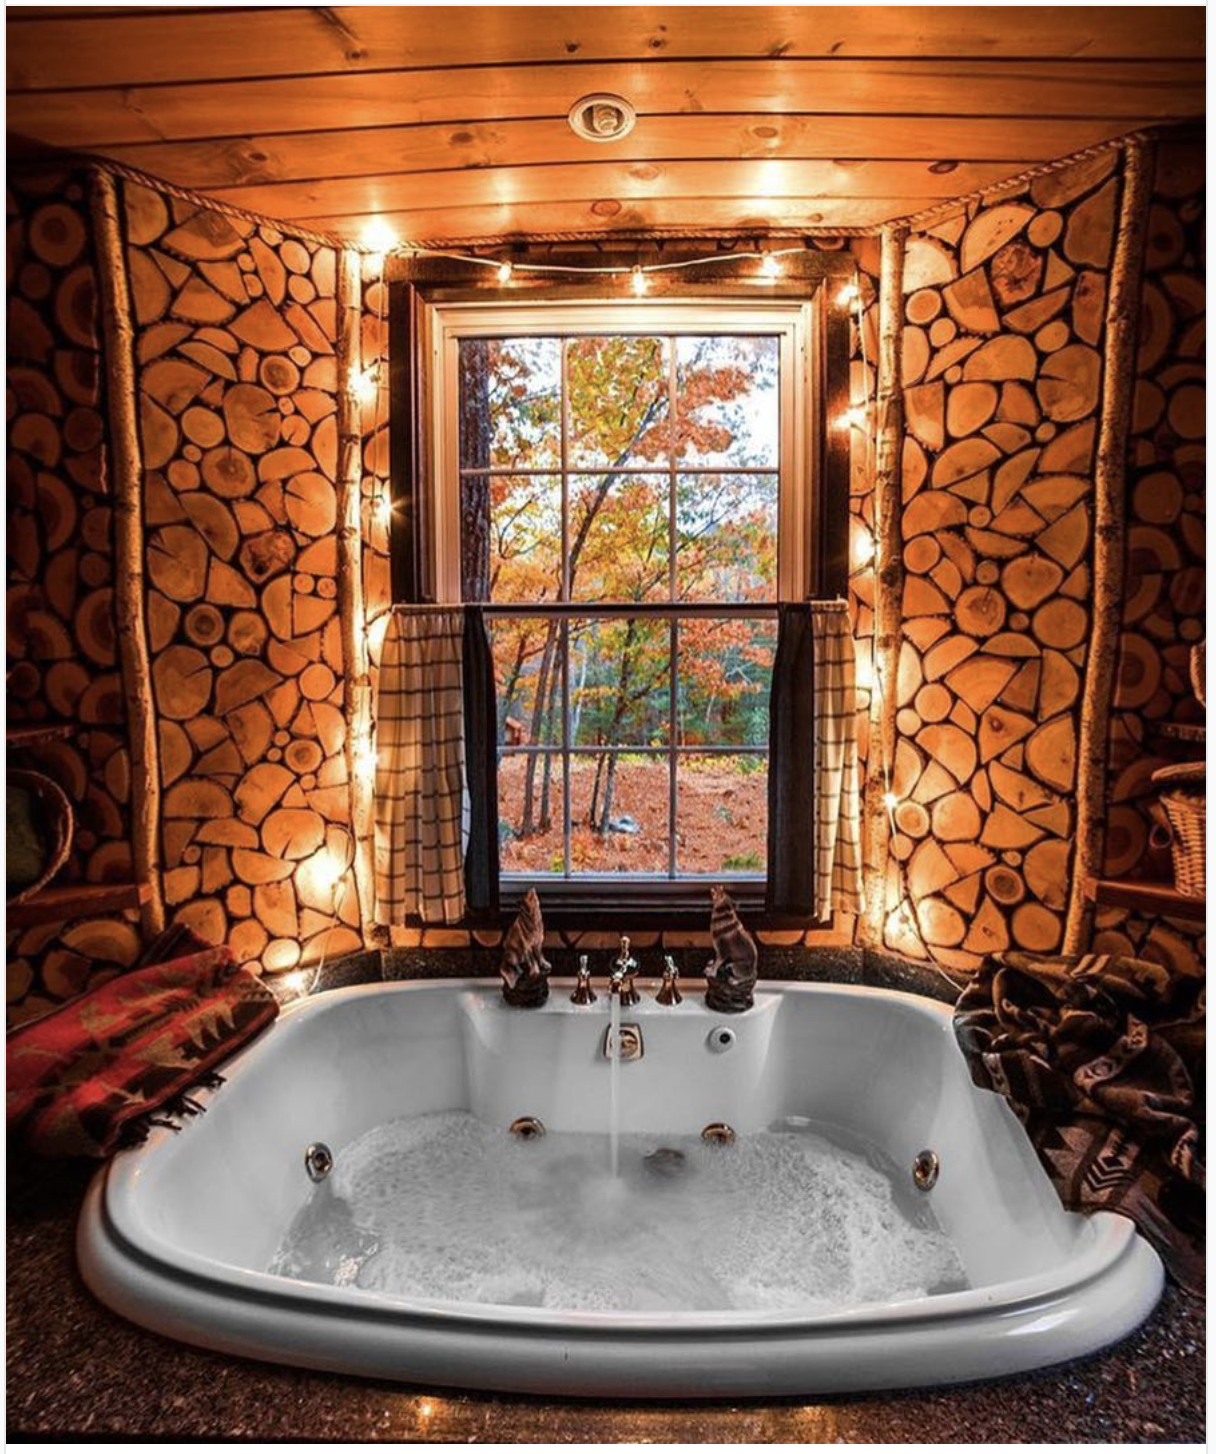 Stoneham Maine Luxury Tree House With Jacuzzi Near White Mountain National Forest Luxuryinteriordesign Luxury Tree Houses Rustic House Indoor Jacuzzi